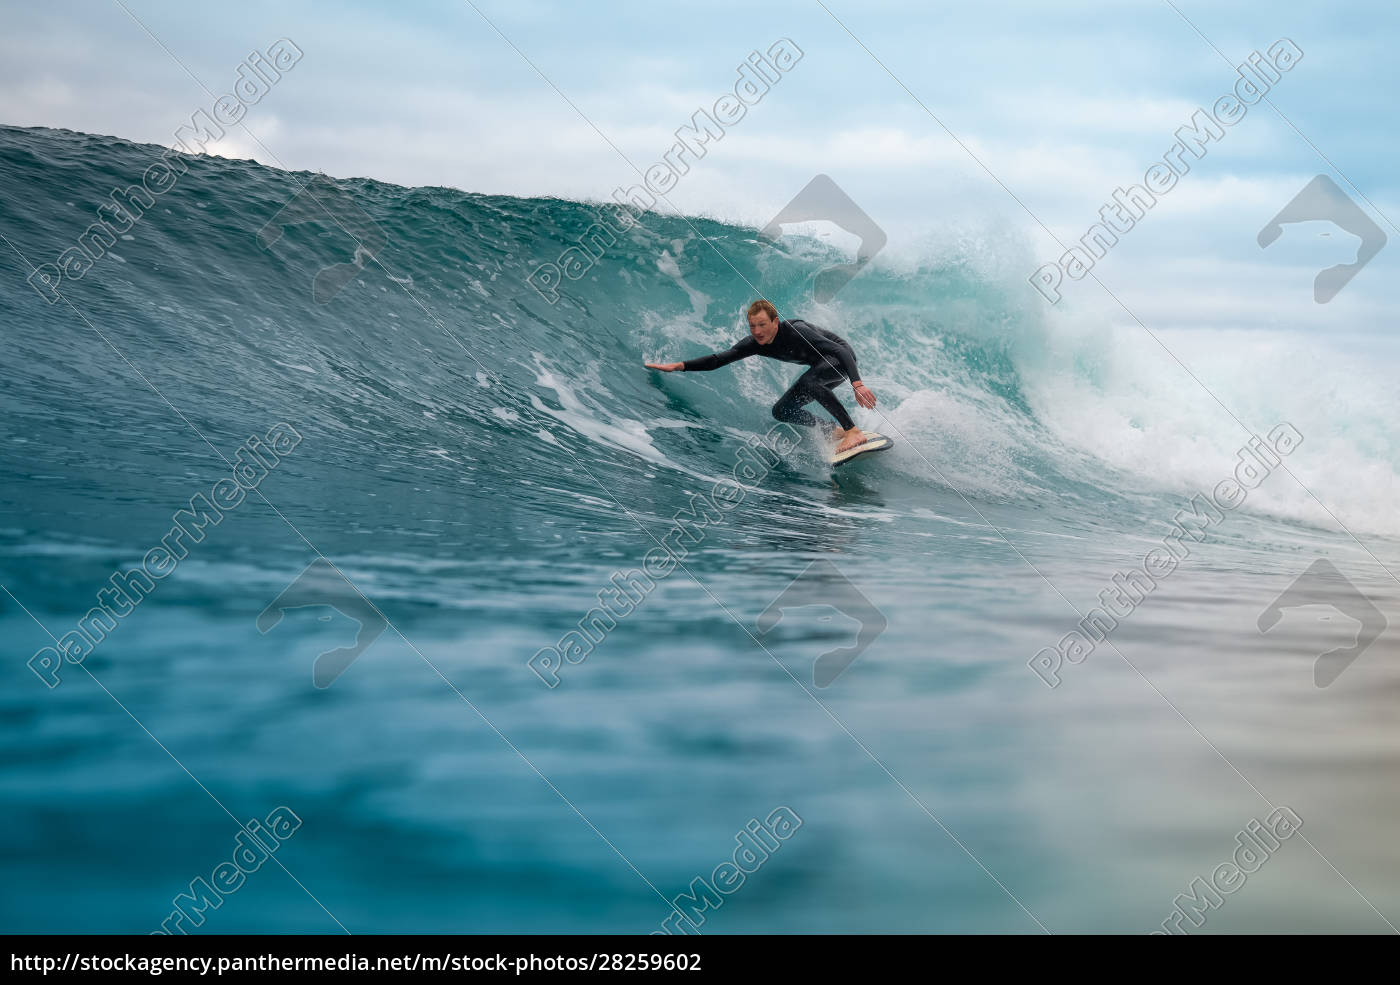 surfer, riding, waves, on, the, island - 28259602